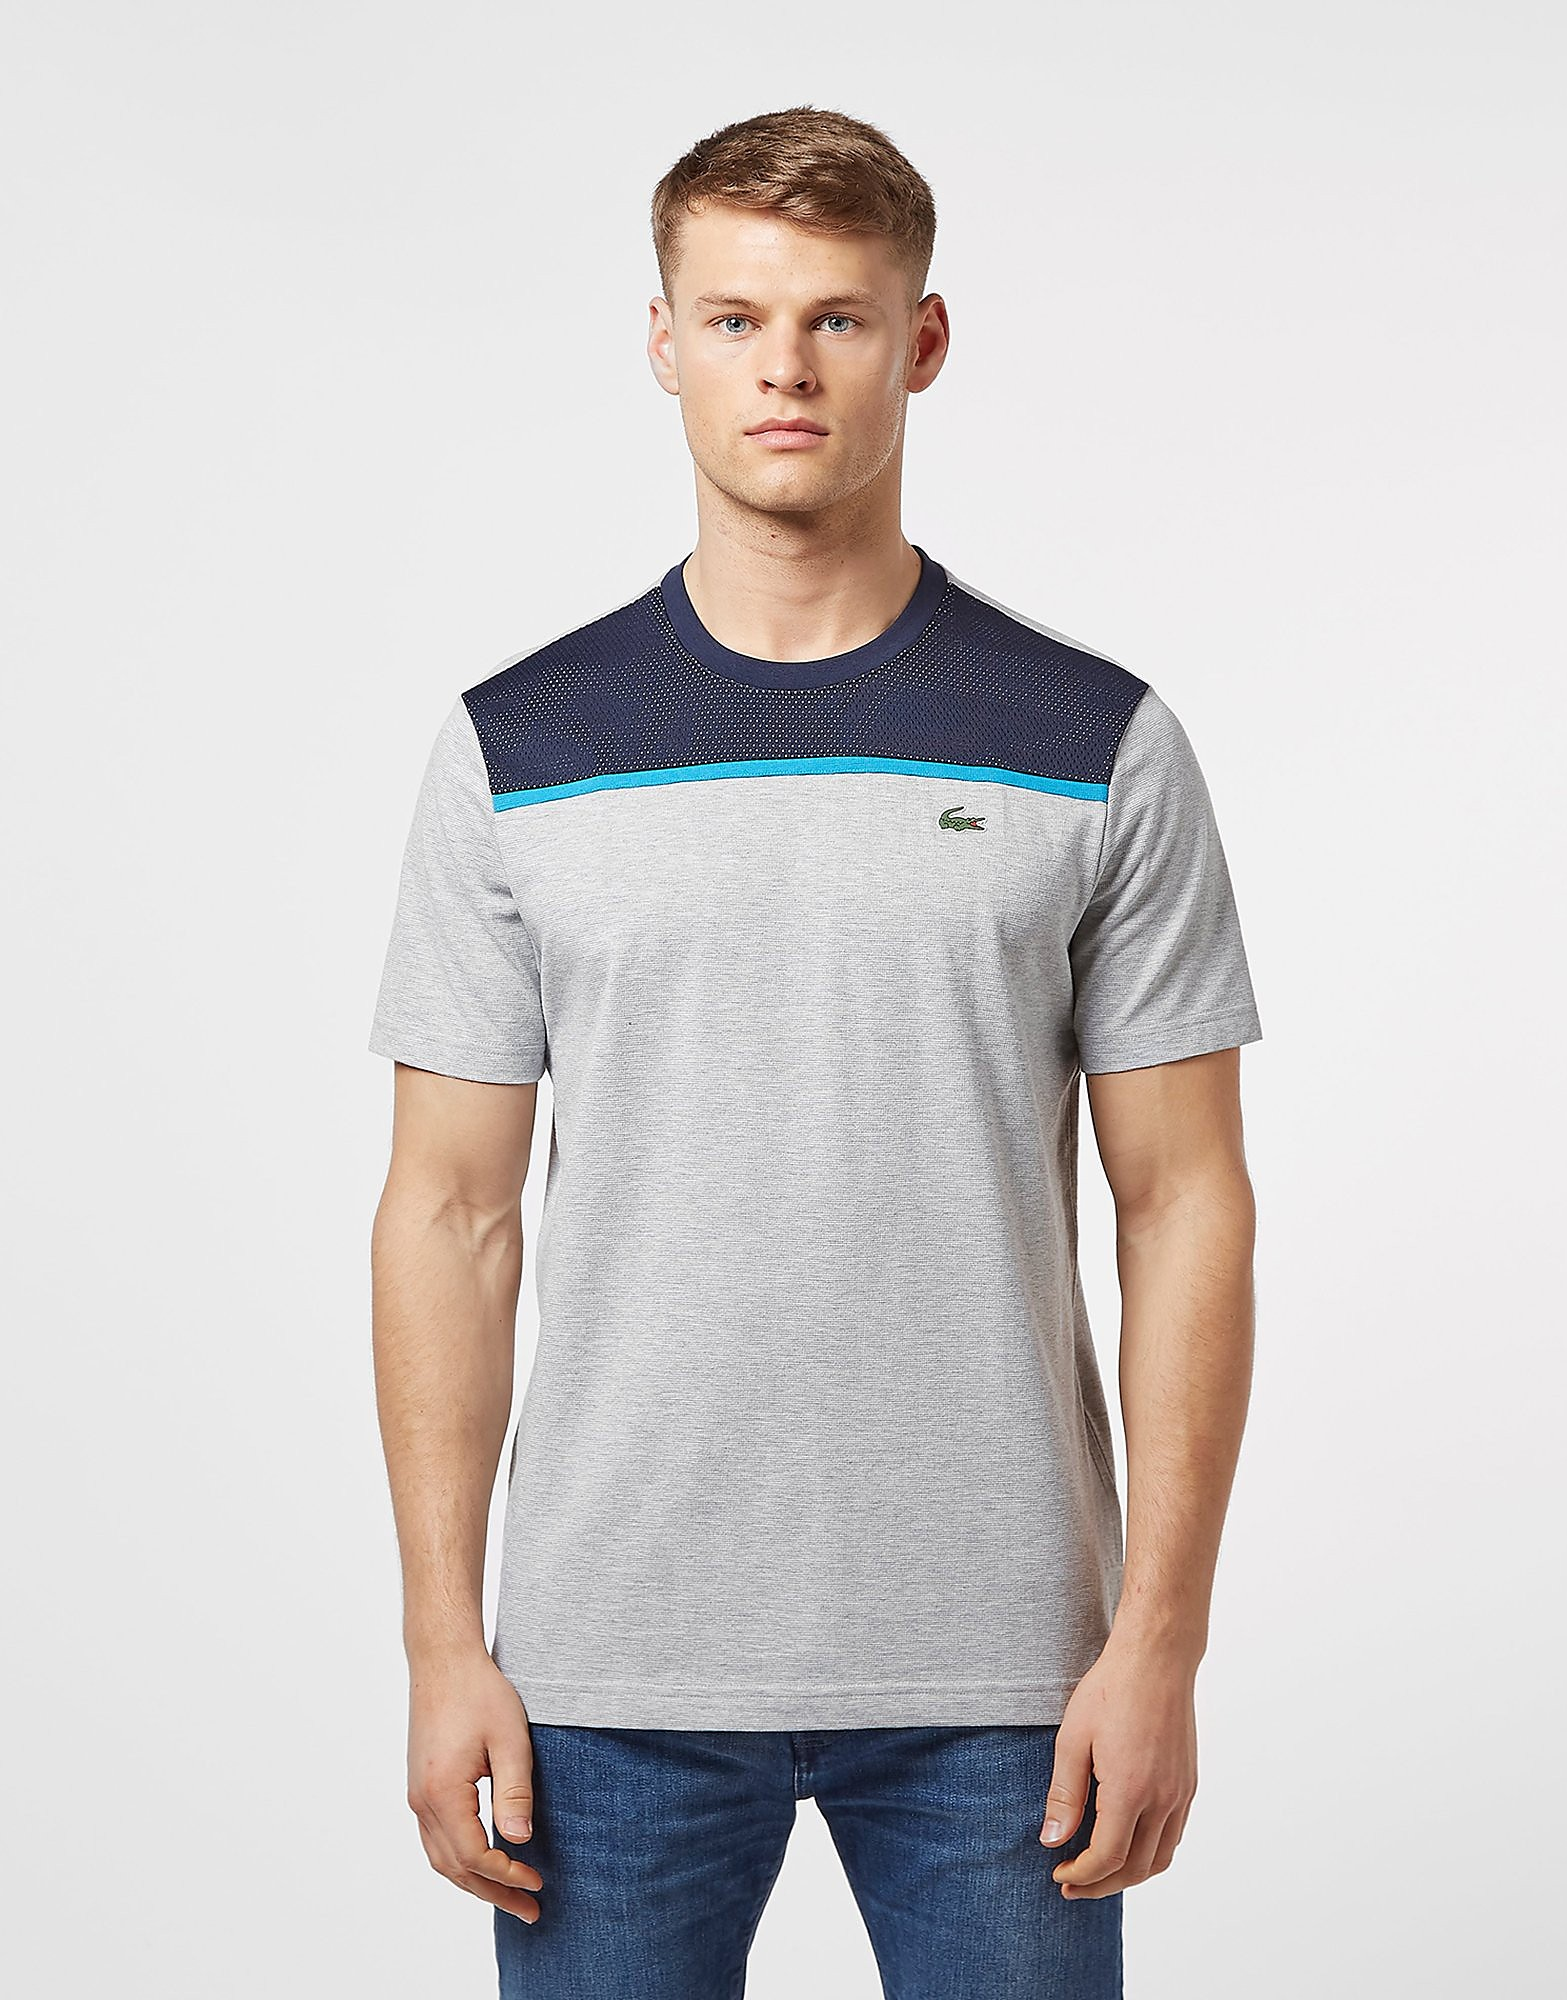 Lacoste Short Sleeve Mesh Upper T-Shirt - Online Exclusive